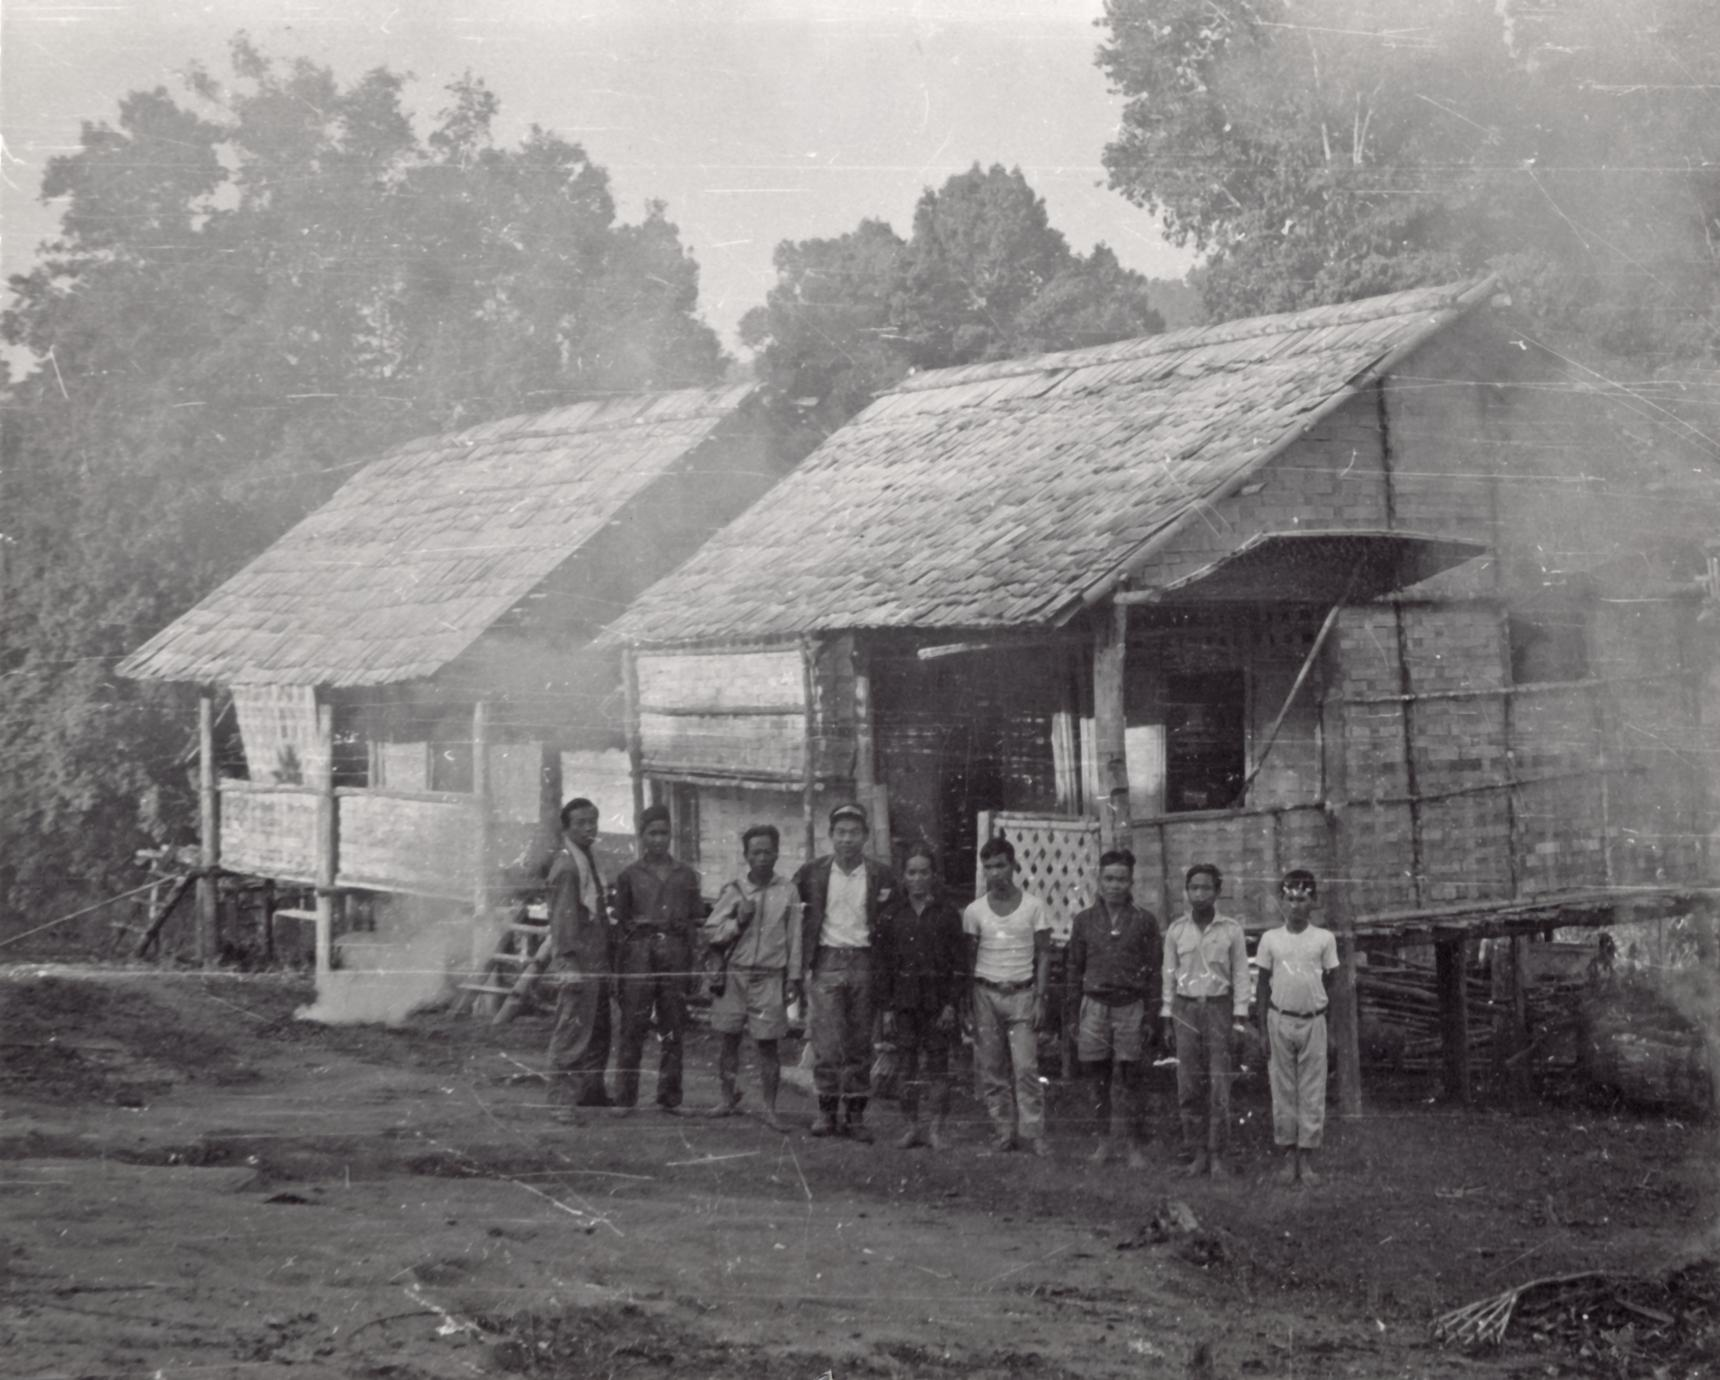 Nine village men stand in front of two houses in Houei Kong Cluster in Attapu Province